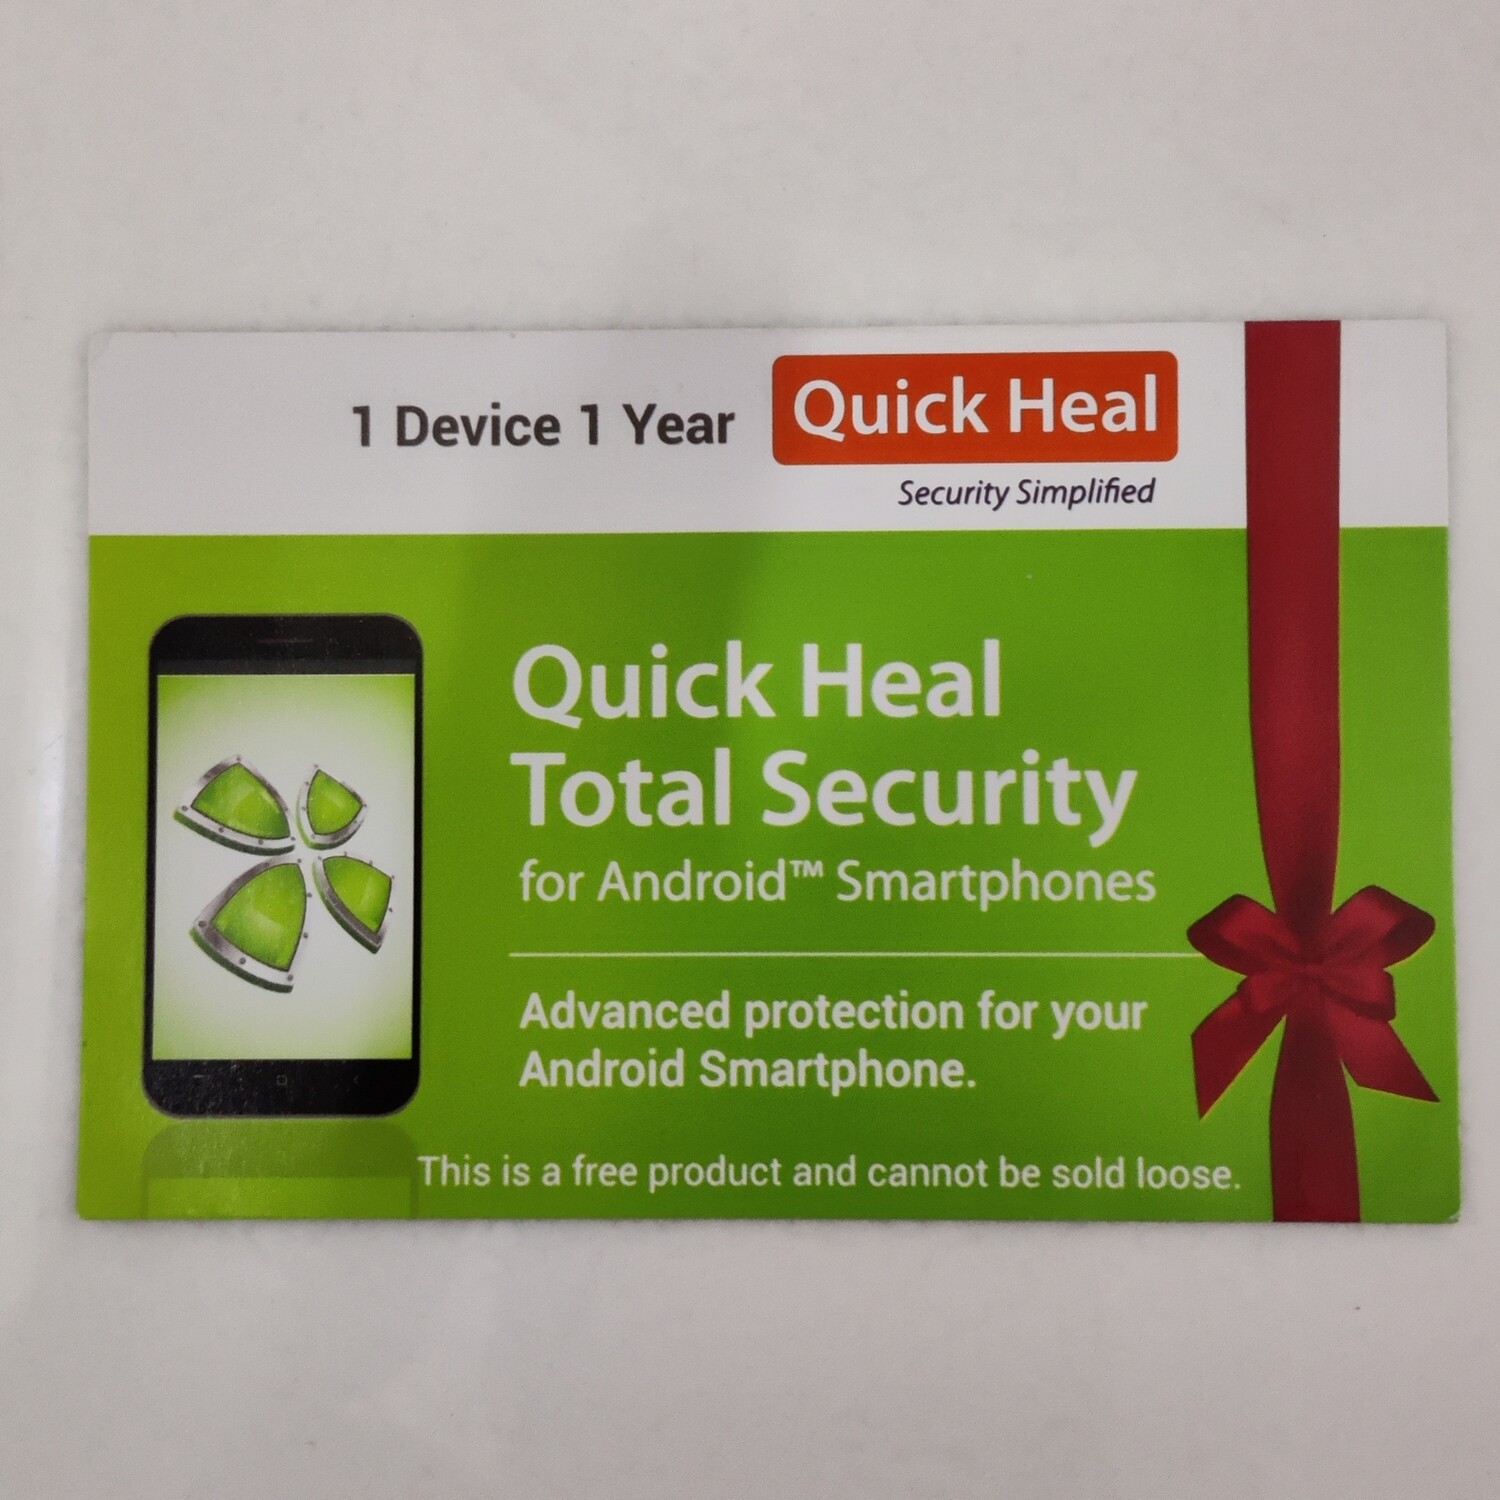 1 Device, 1 Year, Quick Heal Mobile Security, For Android